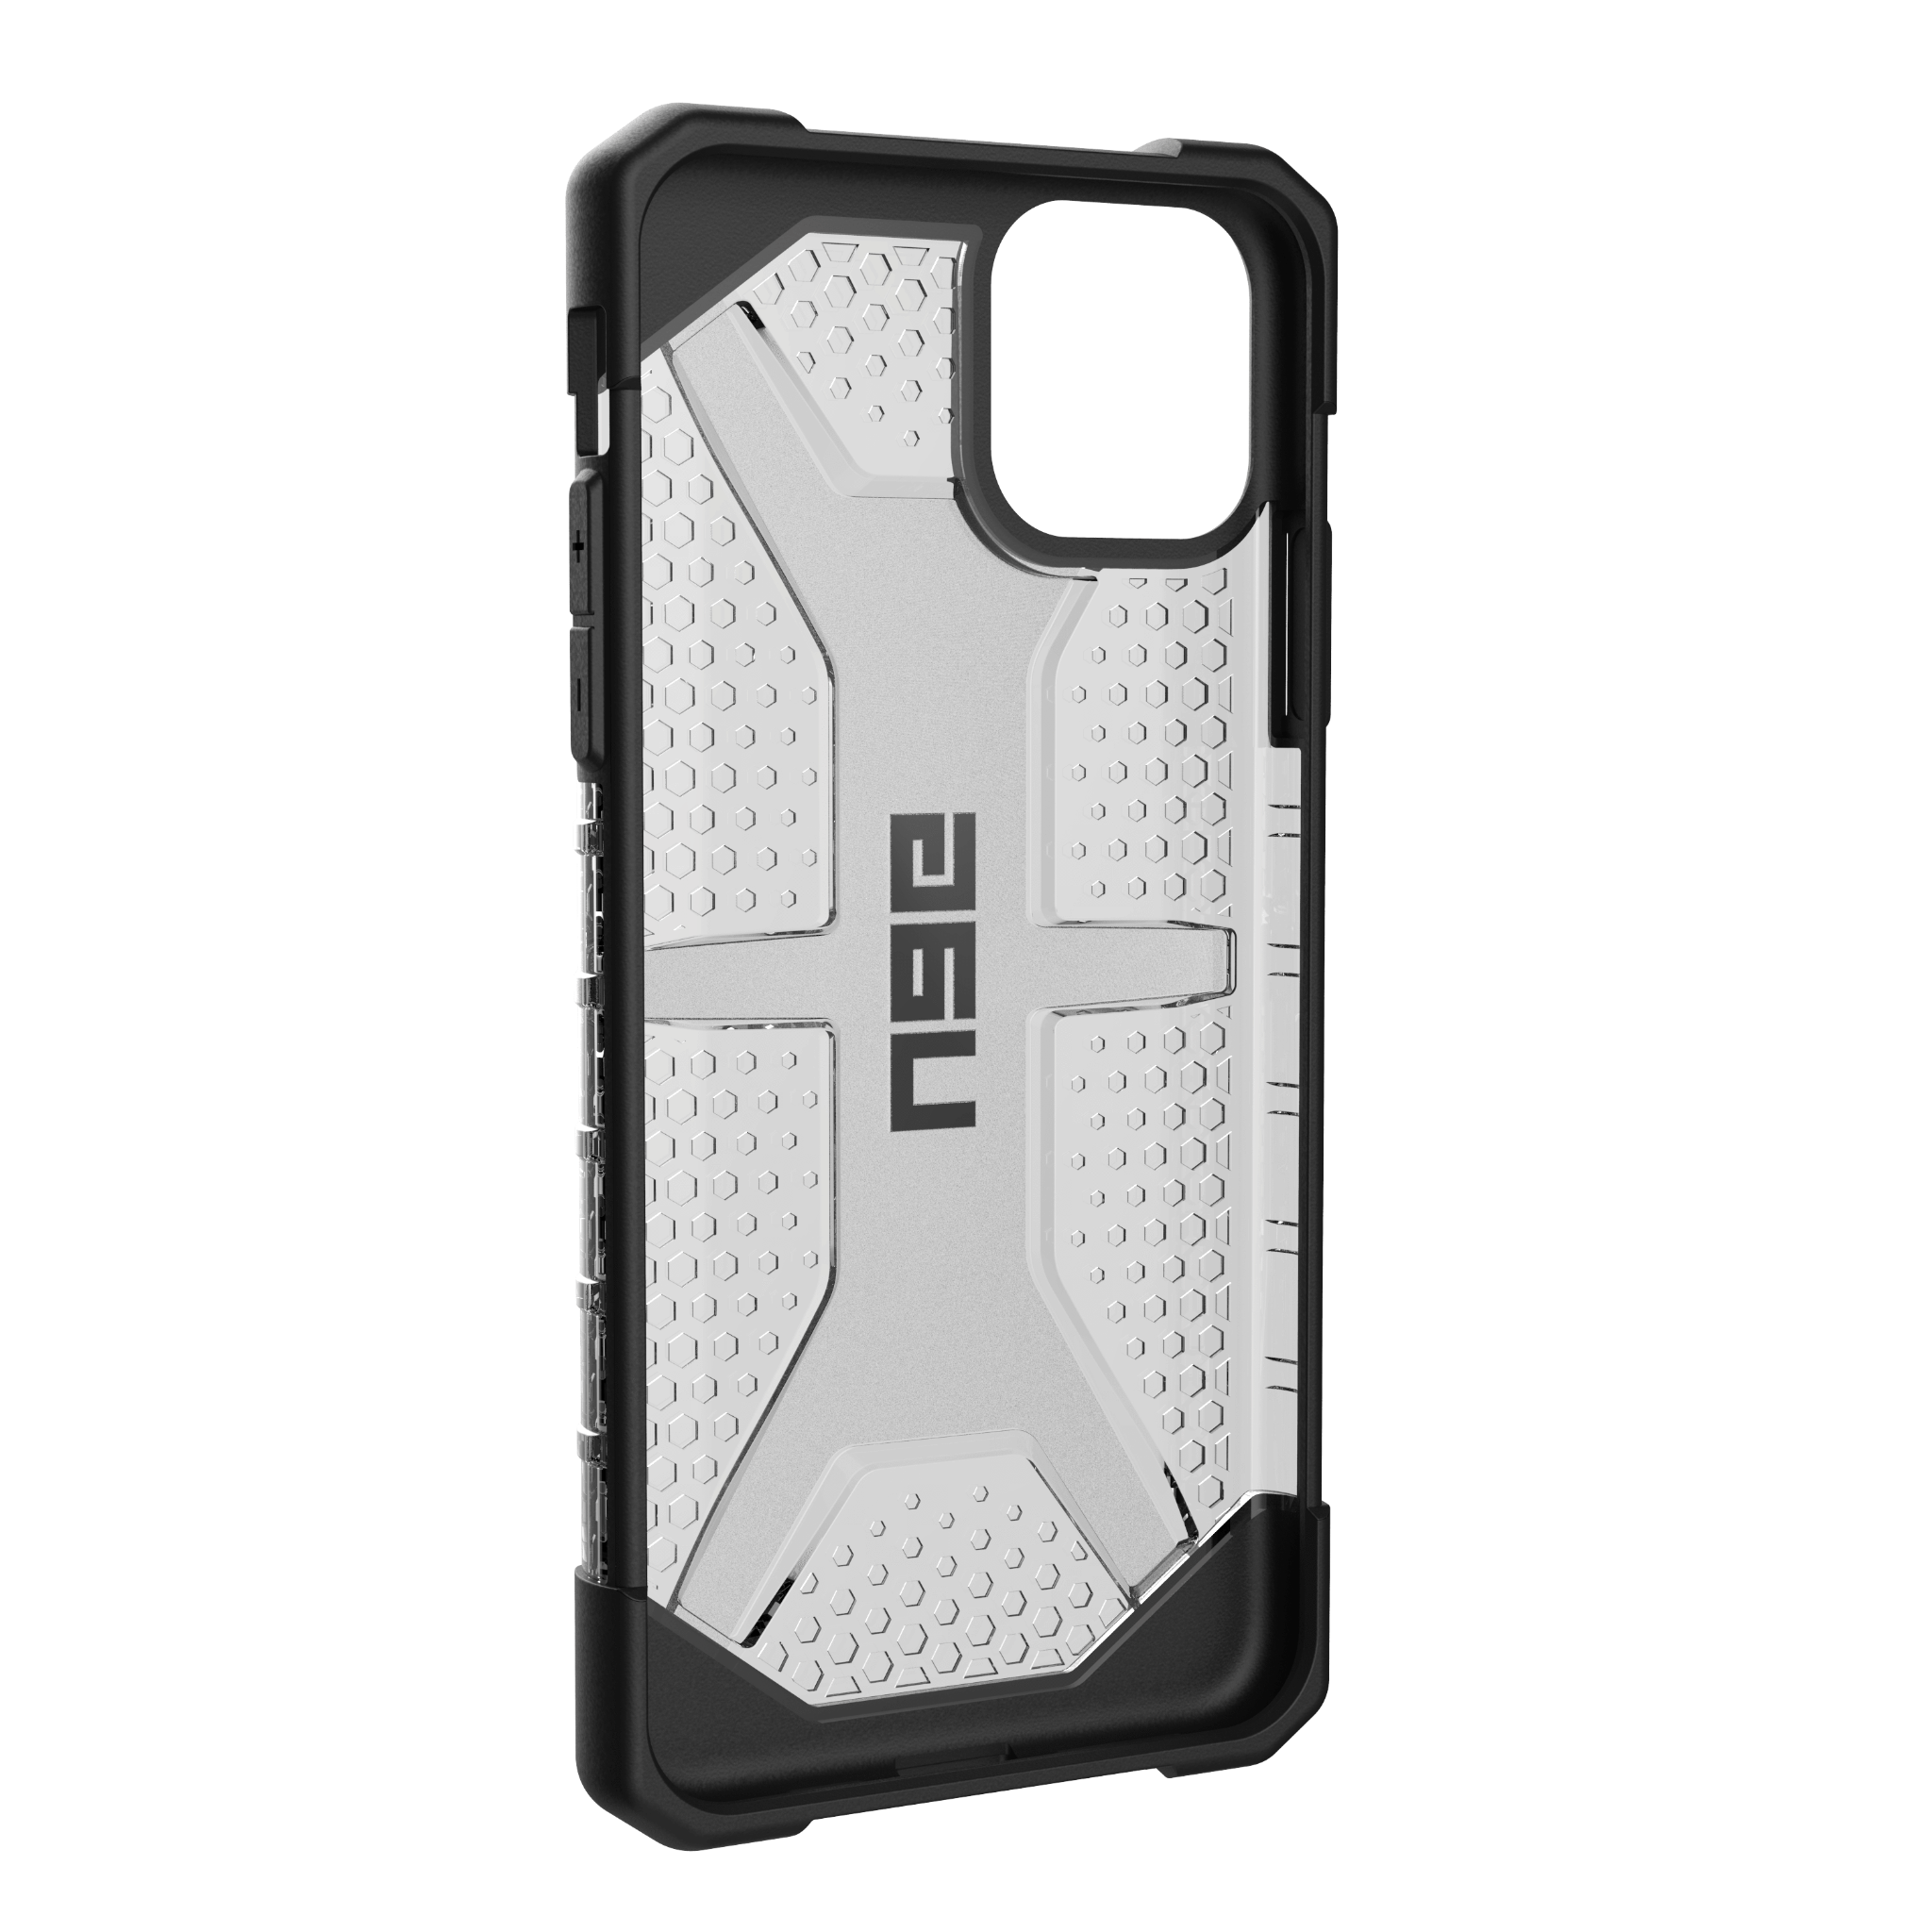 ỐP LƯNG UAG PLASMA CHO IPHONE 11 PRO MAX [6.5-INCH] - Ice